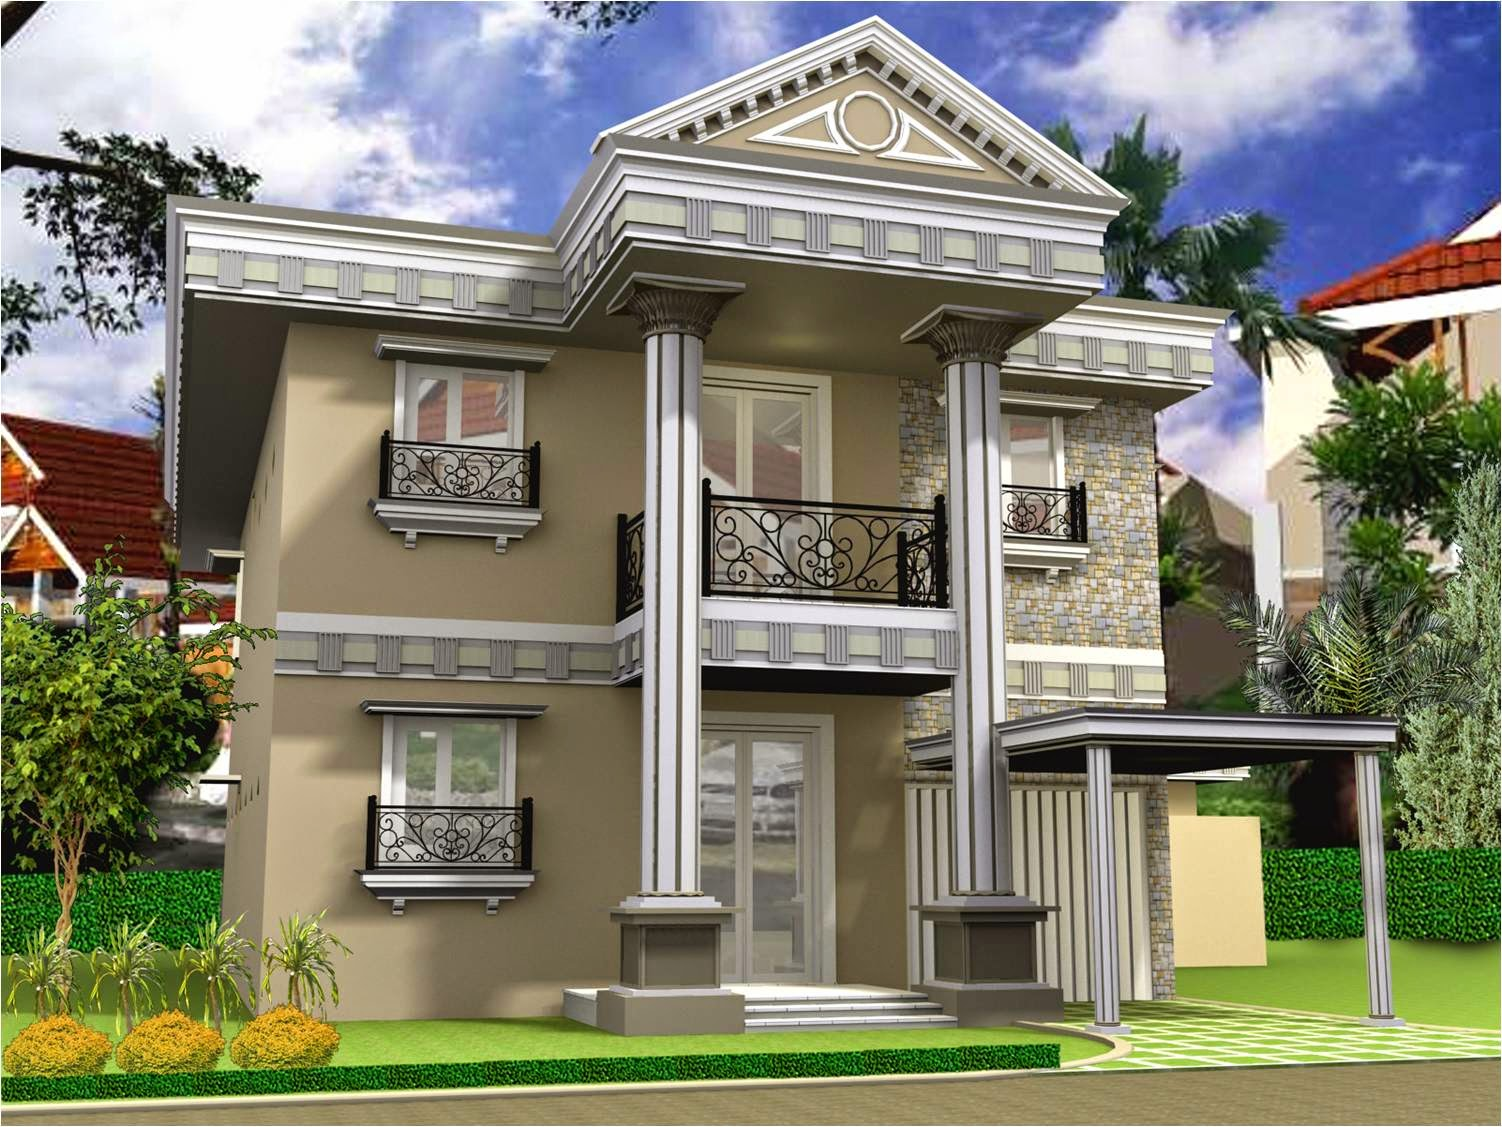 Luxury home design minimalist latest 2nd floor the for 2nd floor house front design